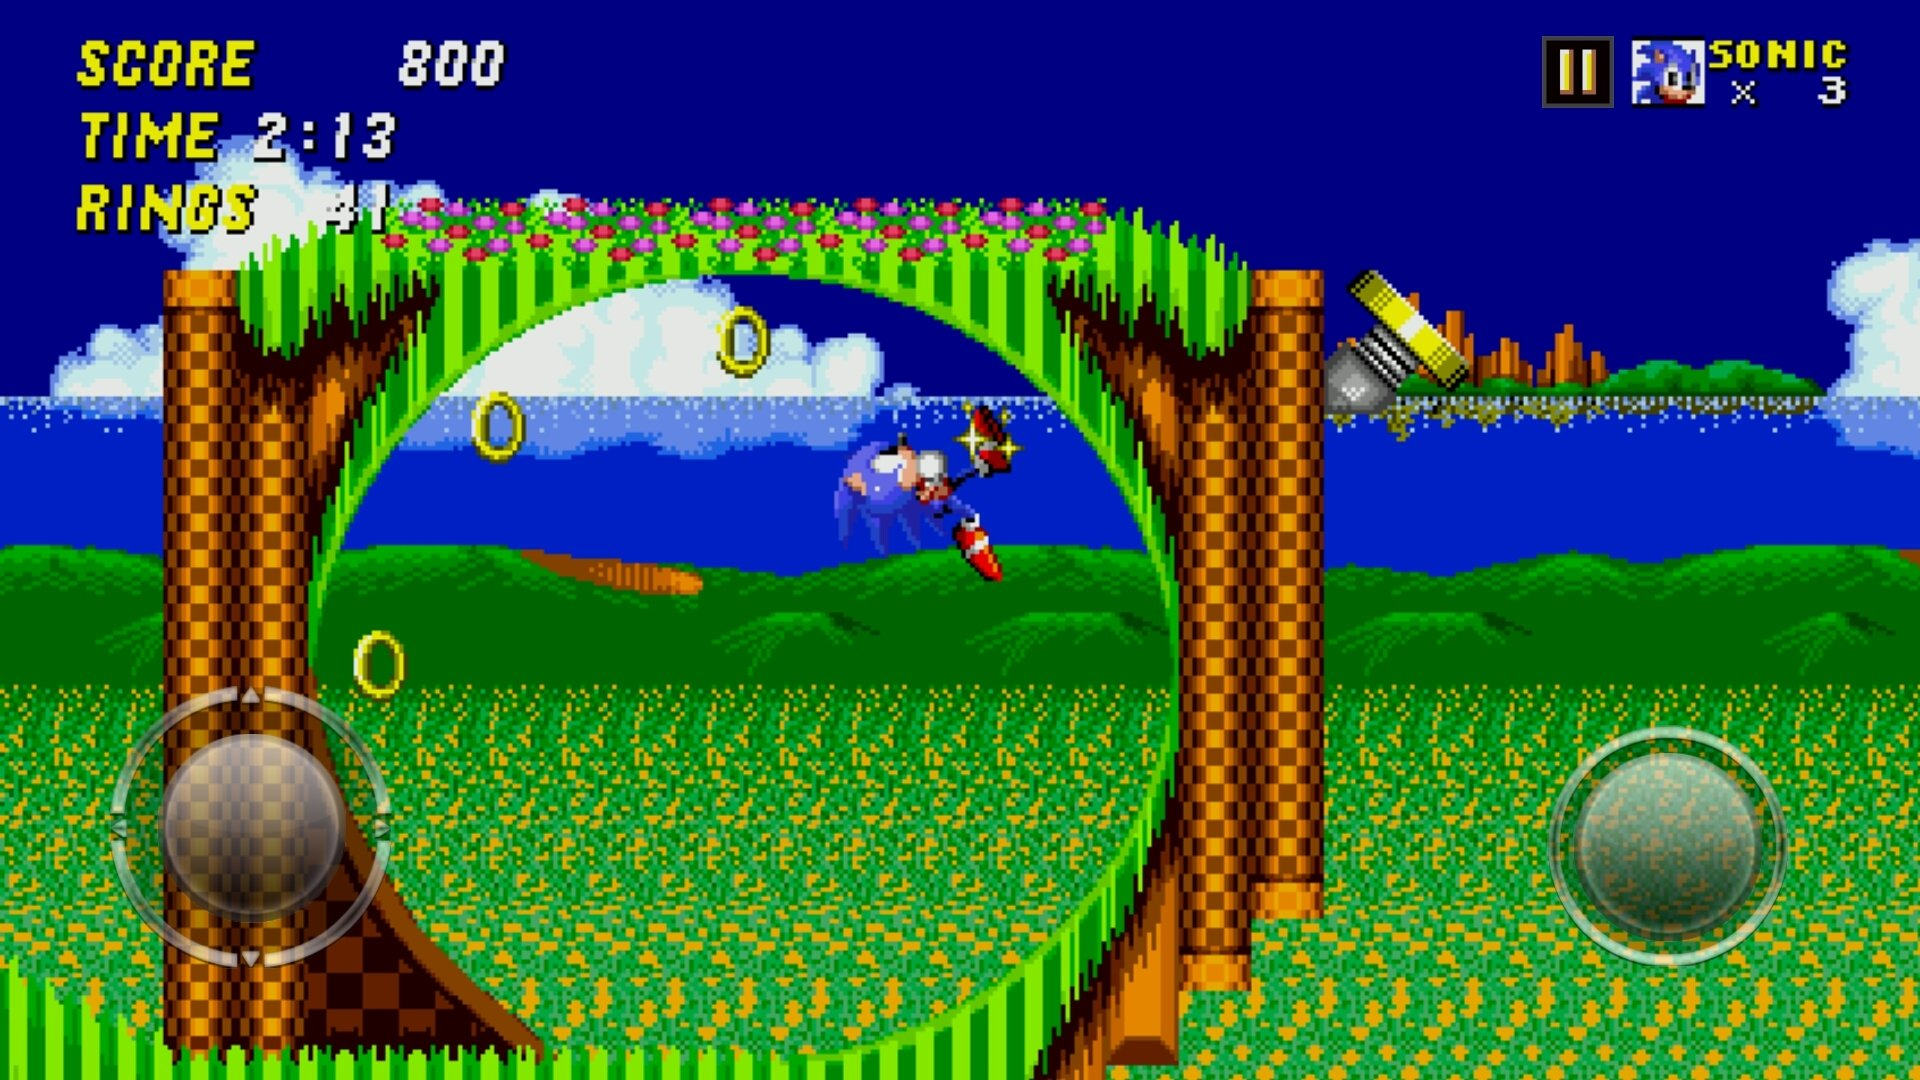 Sonic the hedgehog 2 classic 1. 0. 9 download for android apk free.